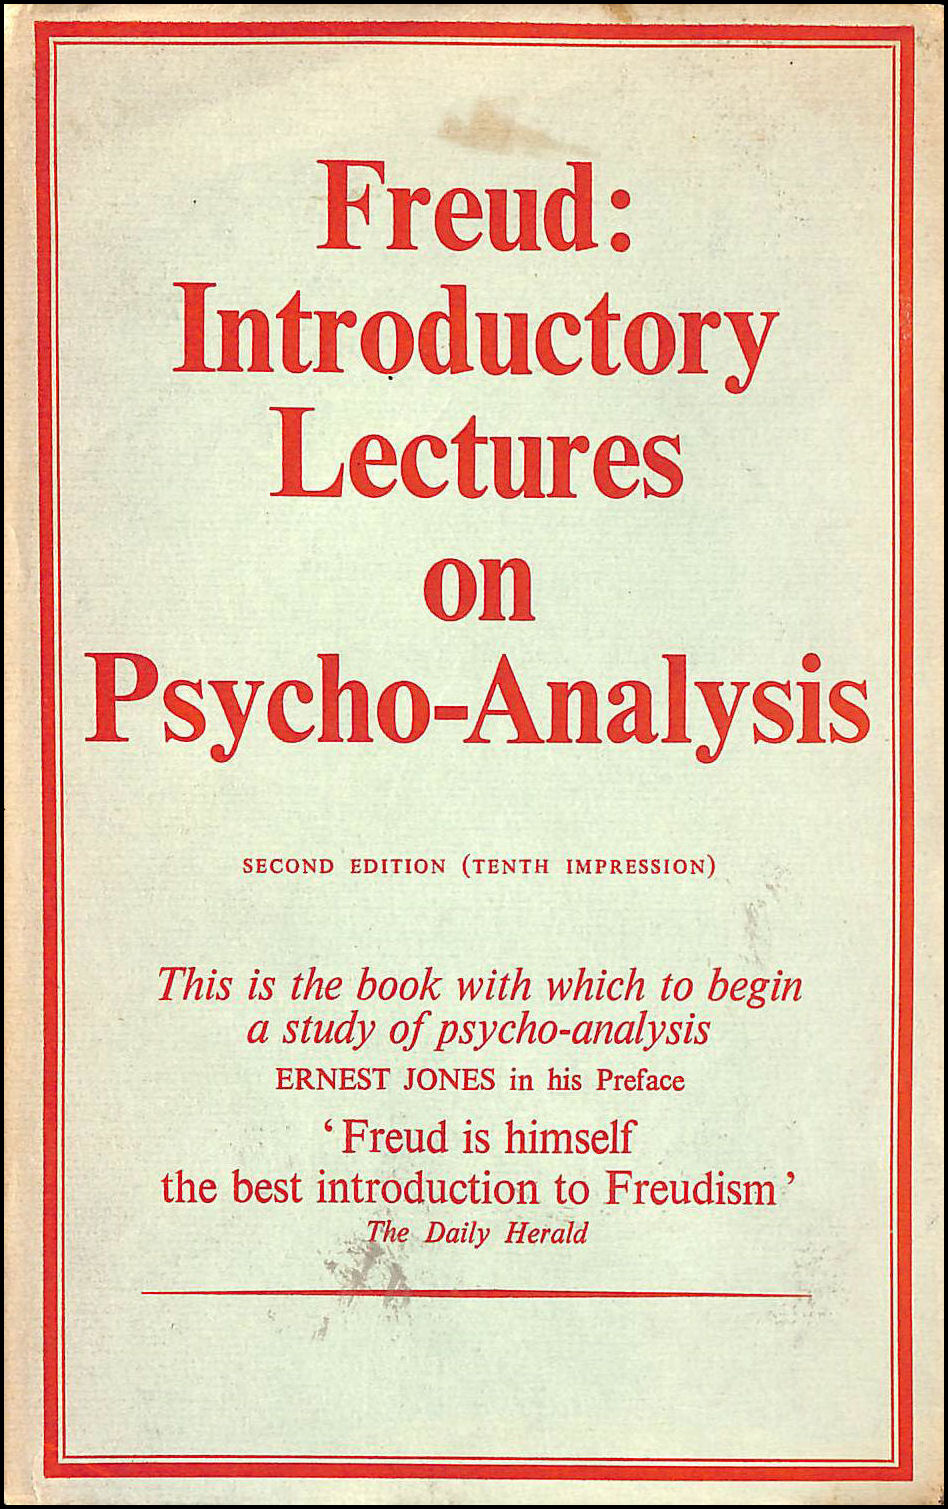 Introductory Lectures on Psycho-analysis. A Course of 28 lectures at the Univ. of Vienna. Tr. by J. Riviere, Preface by E. Jones. Allen & Unwin. 1961., Freud